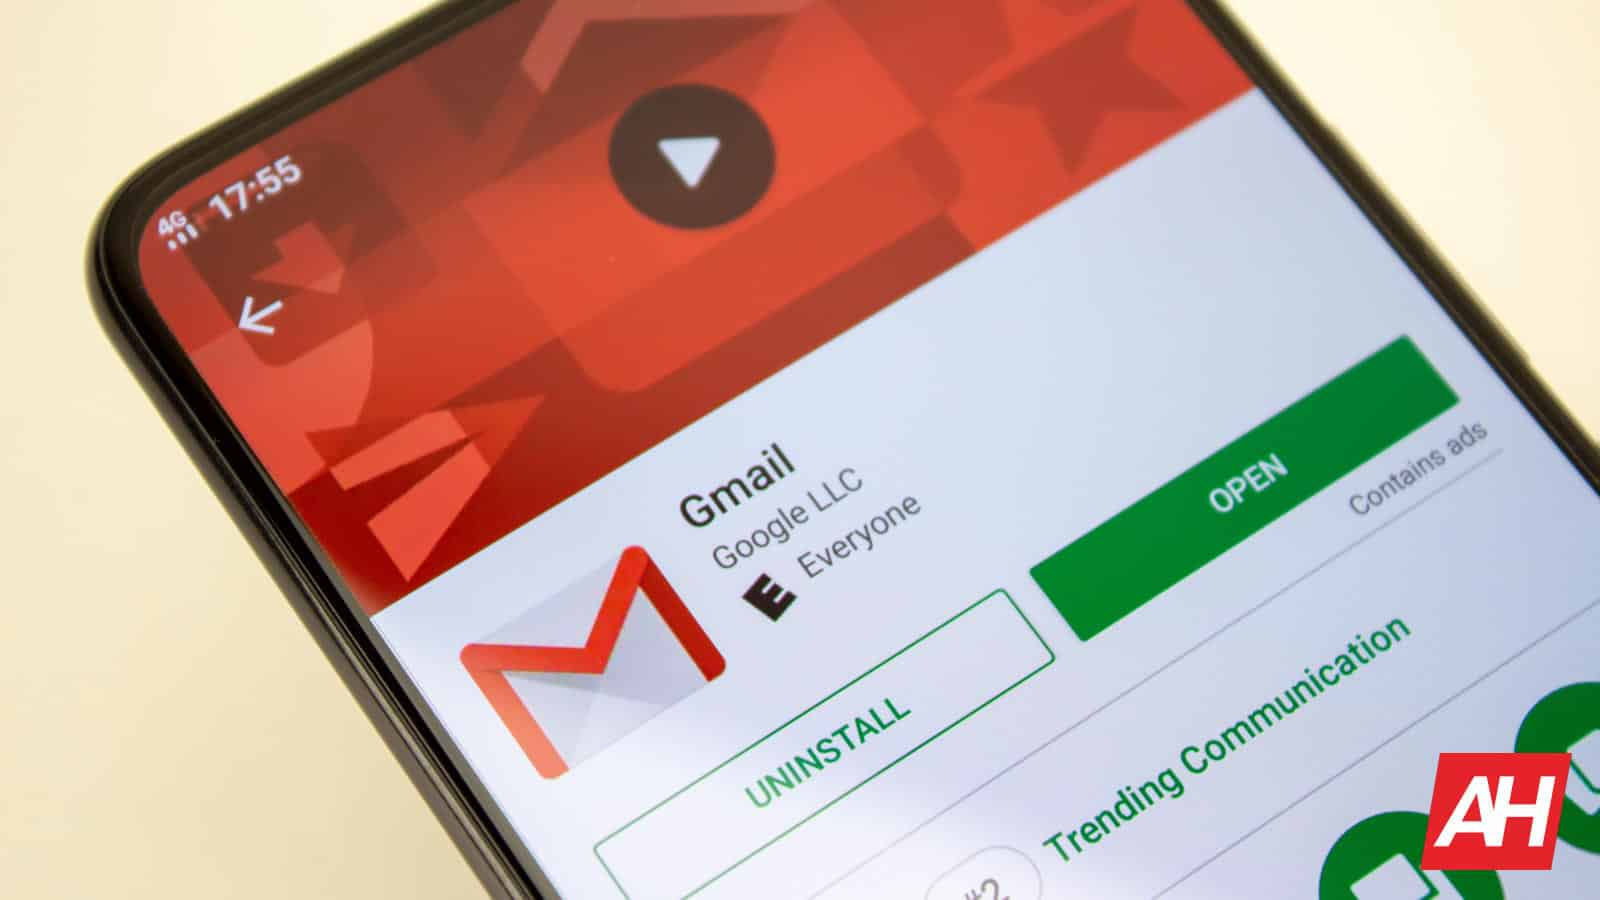 Google Introduces New Way to Copy Email Address to Gmail Android App